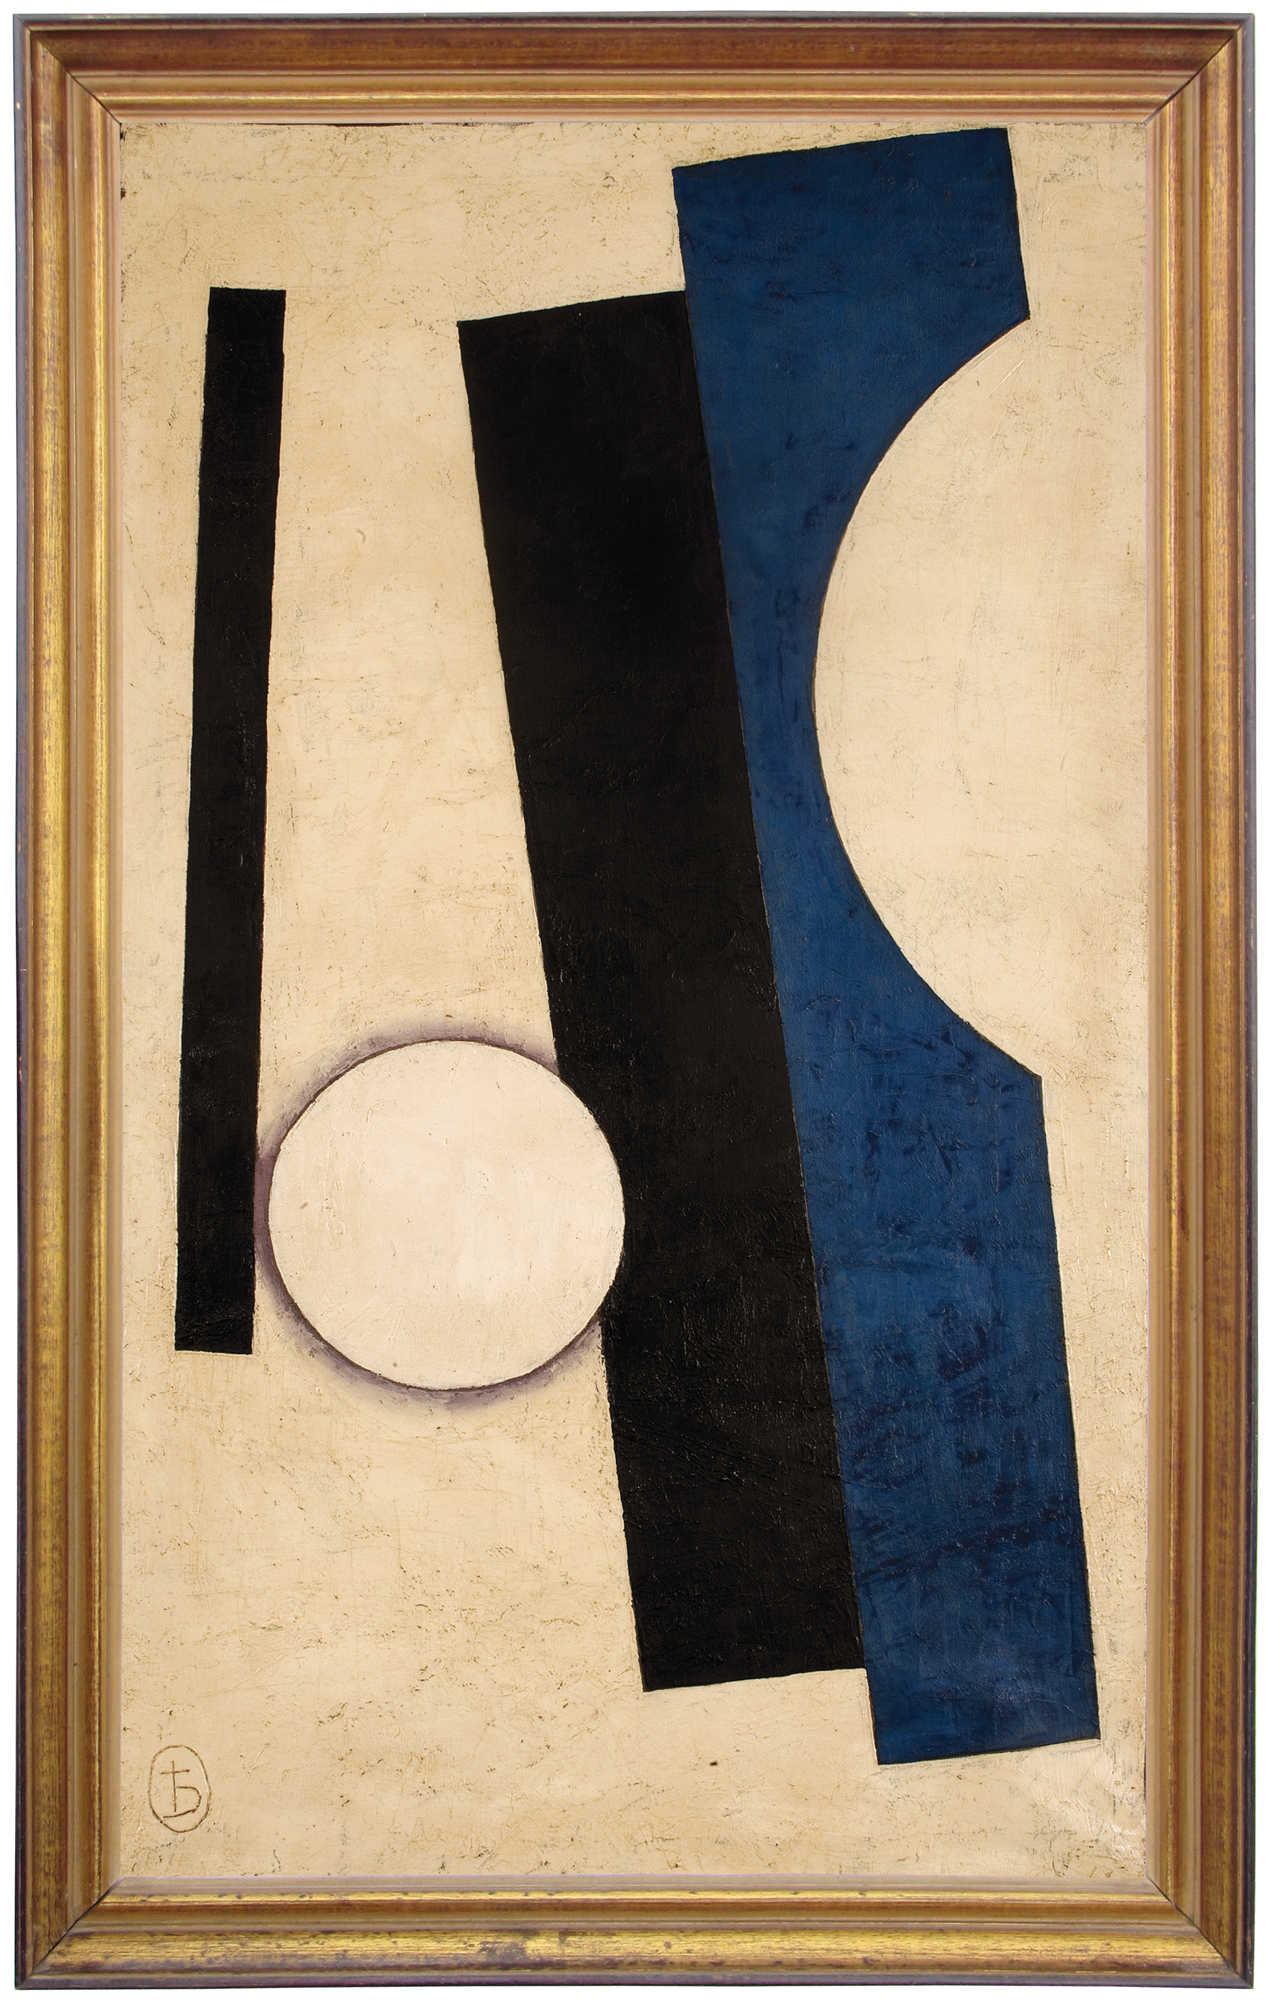 """Unattributed. Signed""""b"""" (archaic cyrillic """"yat"""" symbol),on lower left front corner. In the style of Liubov Popova.Faint mark on reverse, appears to read """"1916"""".   Oil on canvas. 83 x 50 cm."""